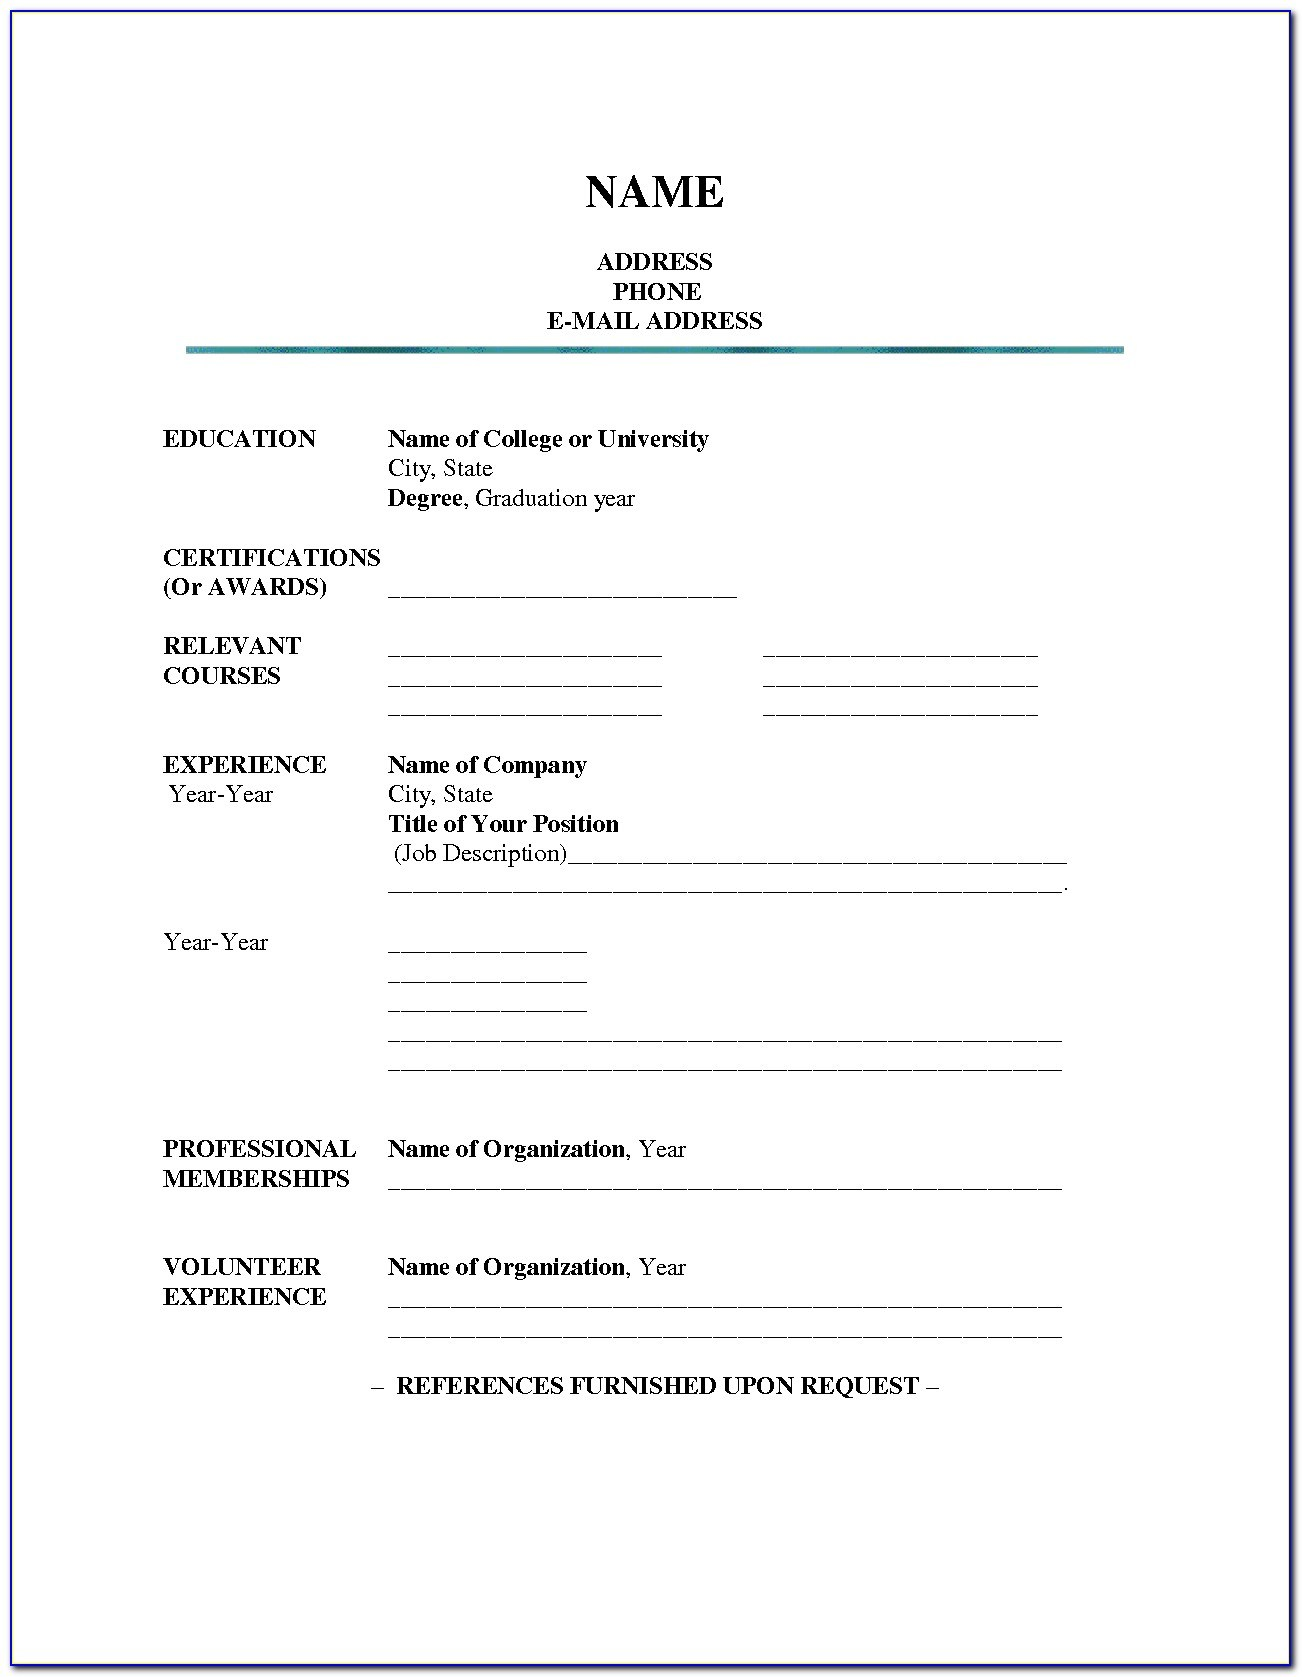 blank resume template word vincegray2014 senior financial executive example creative Resume Download Blank Resume Template